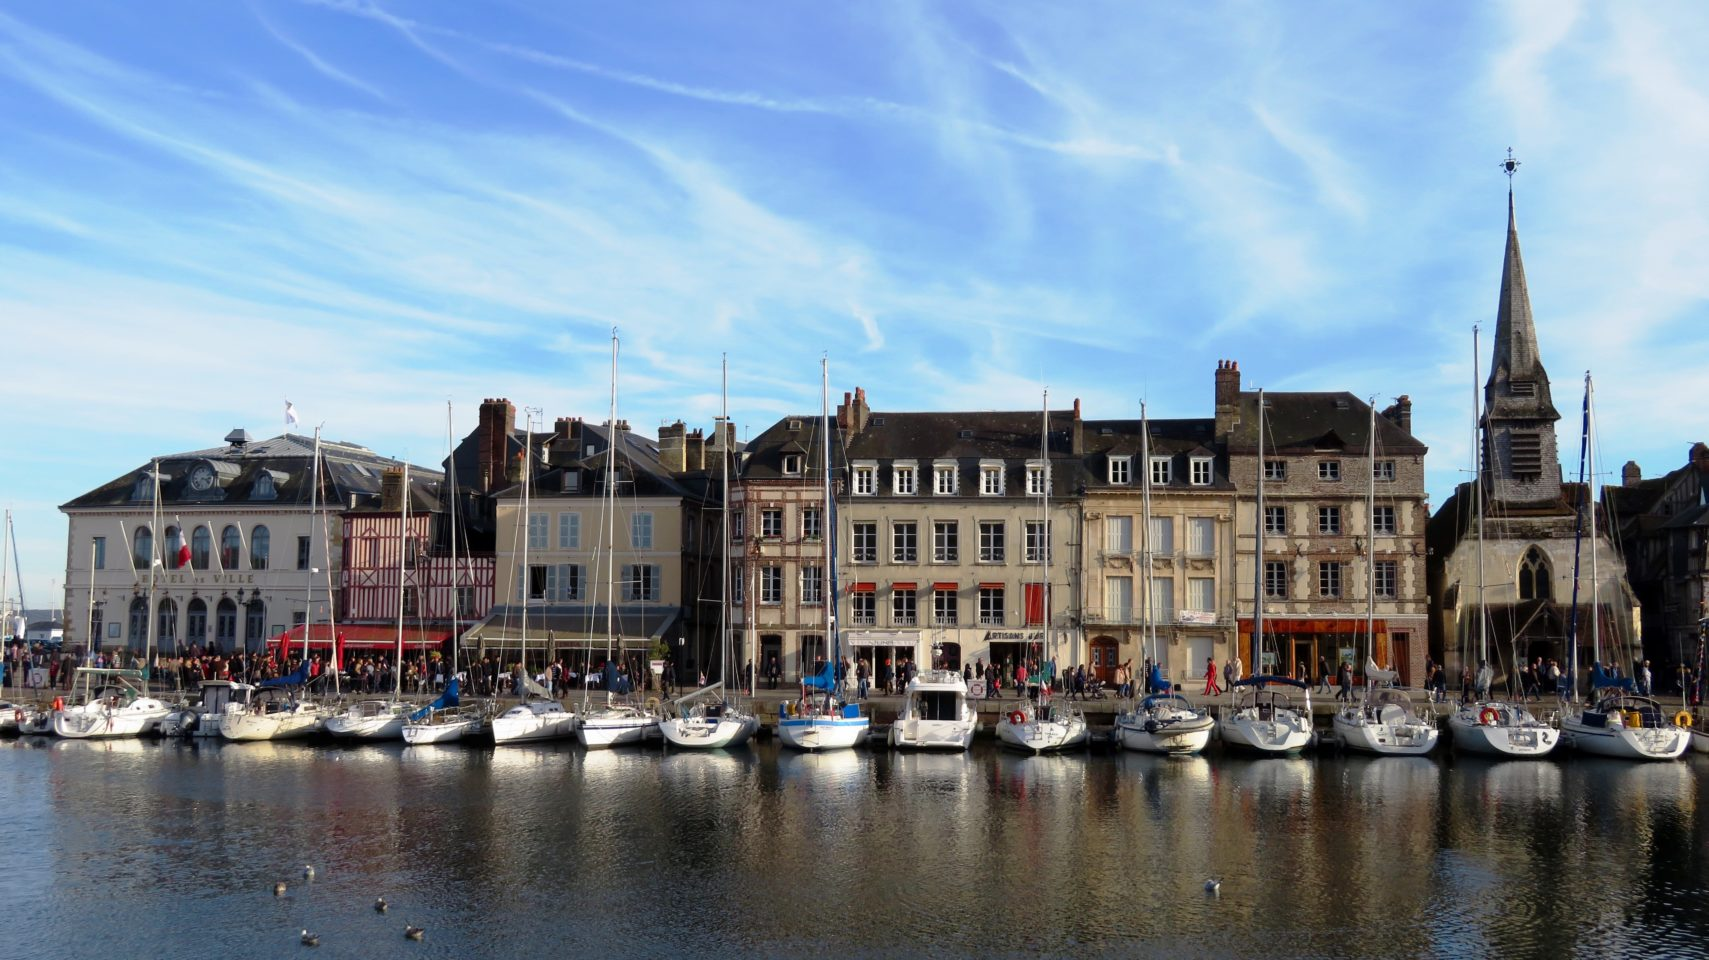 Honfleur, on the Atlantic coast of France, from where Samuel de Champlain left to settle Quebec City in 1608